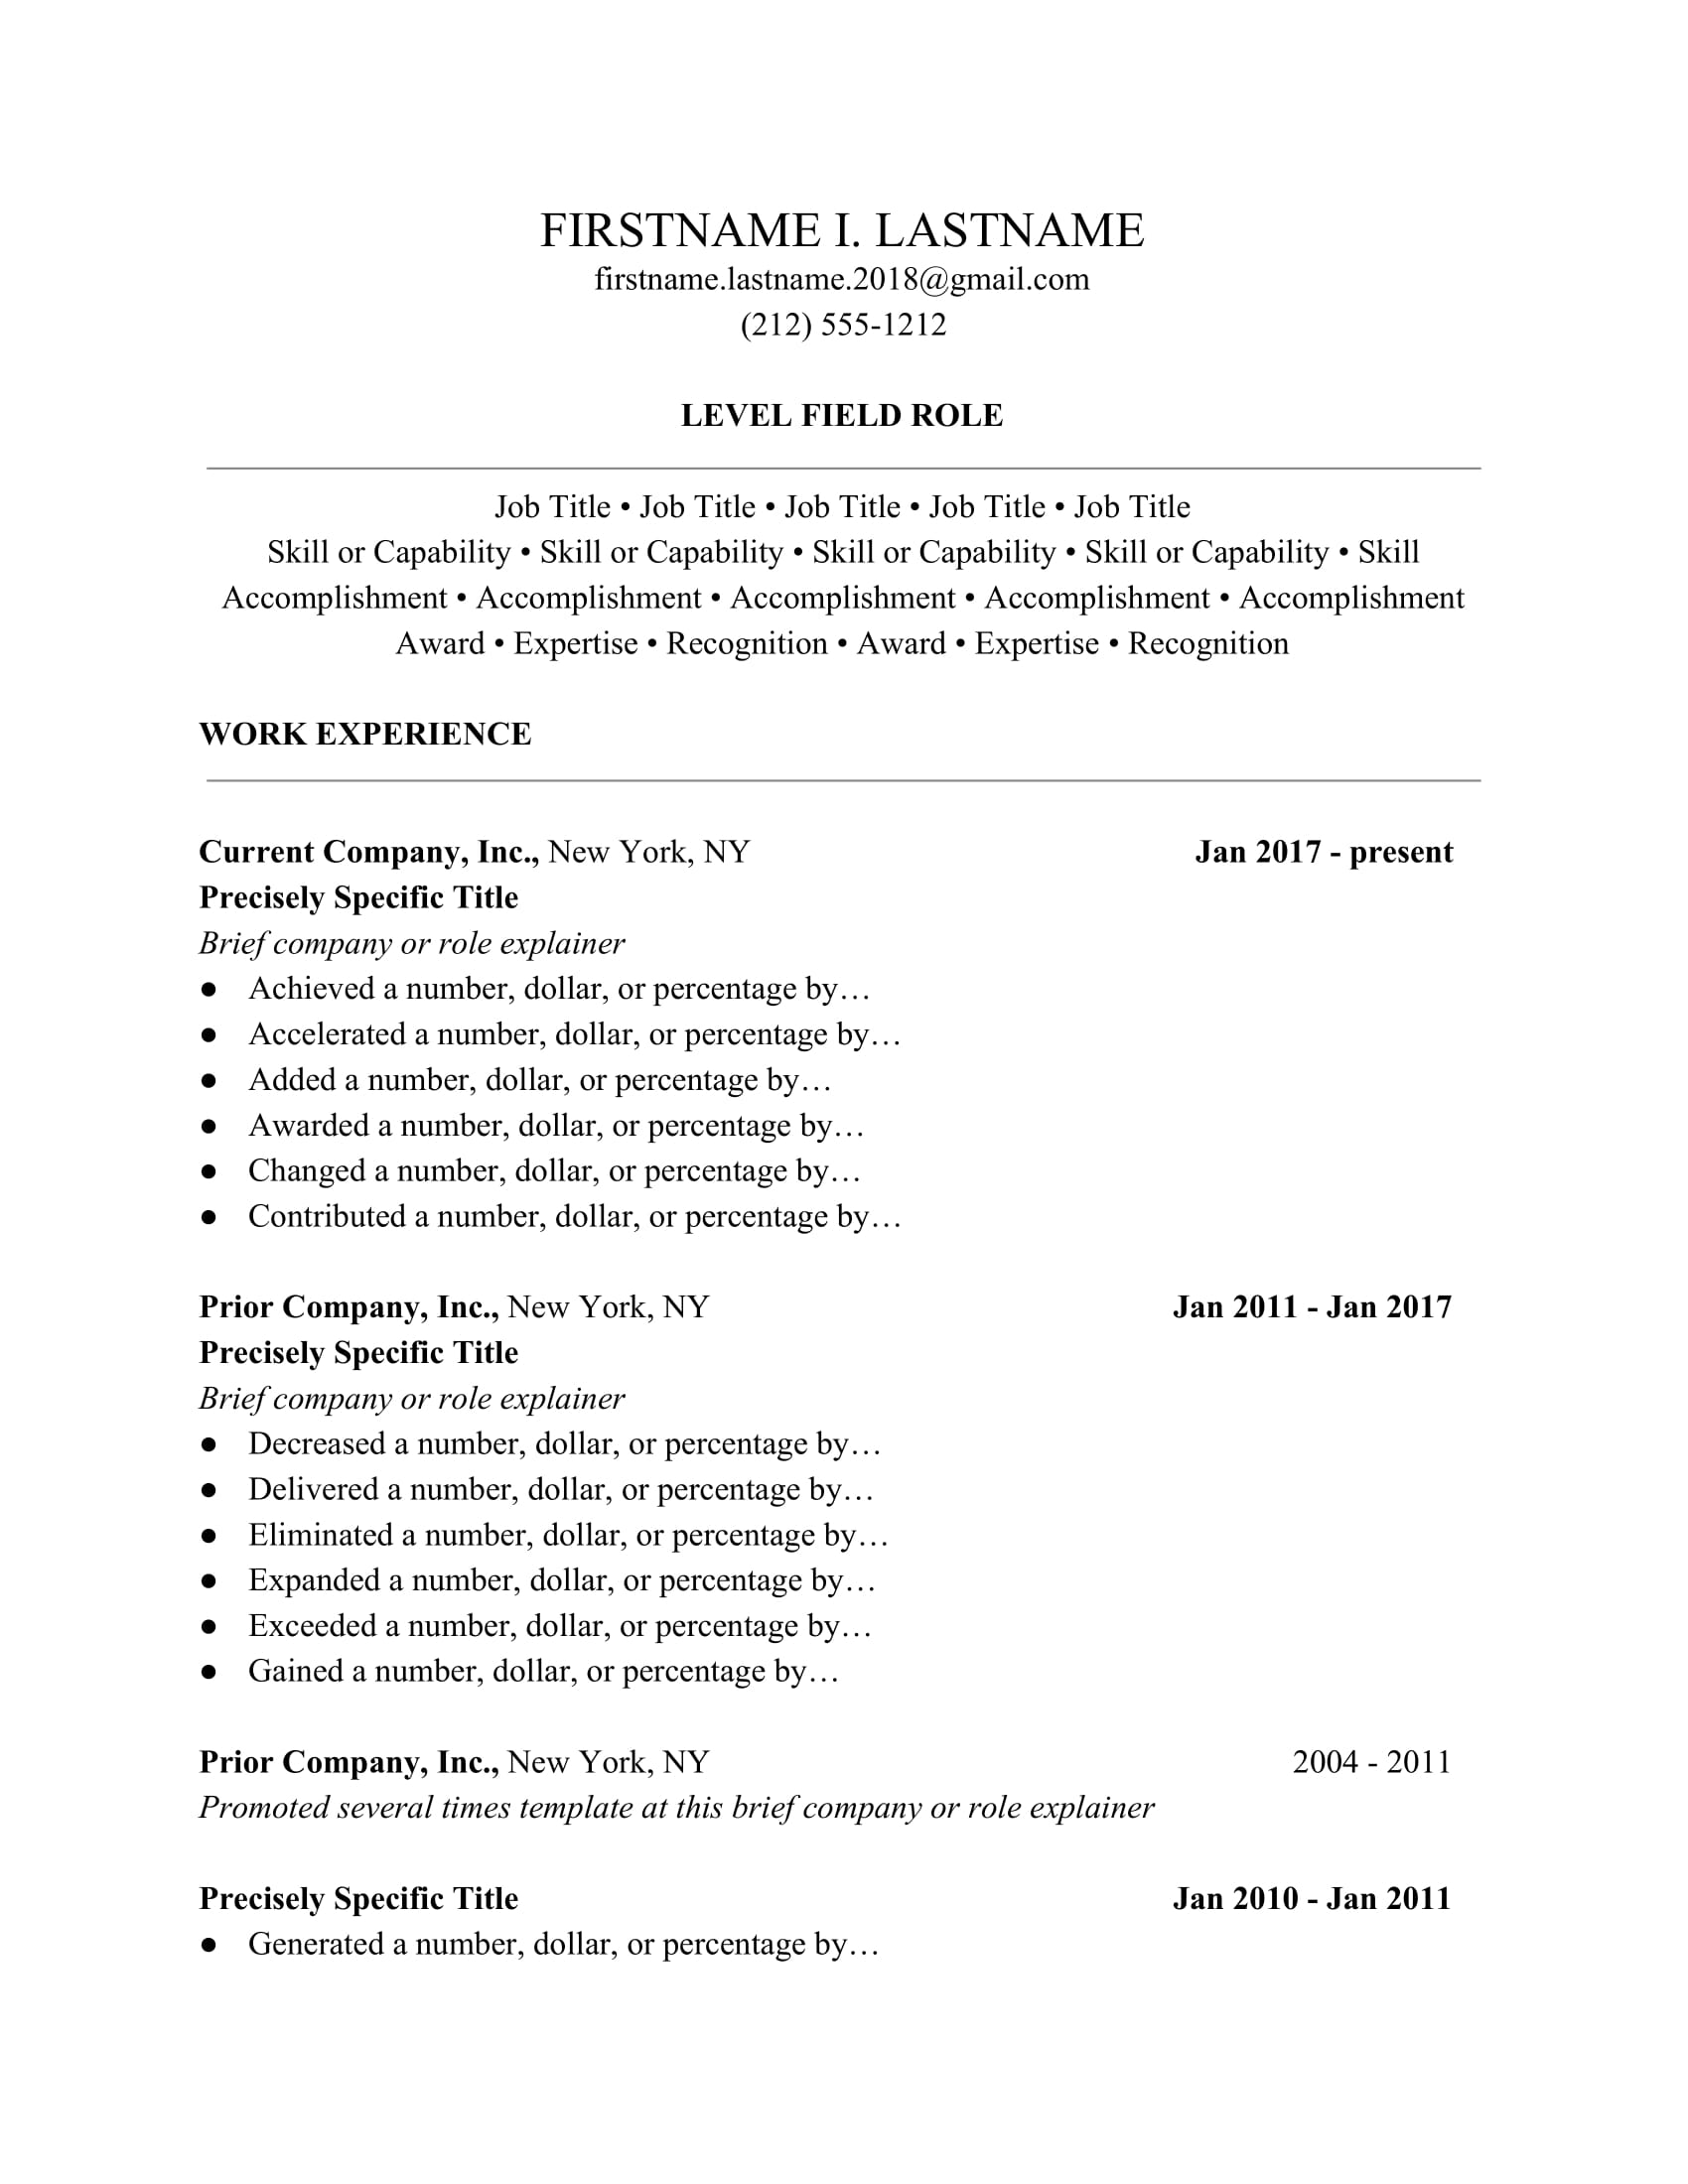 Ladders Resume Ladders 2018 Resume Guide Free Resume Templates